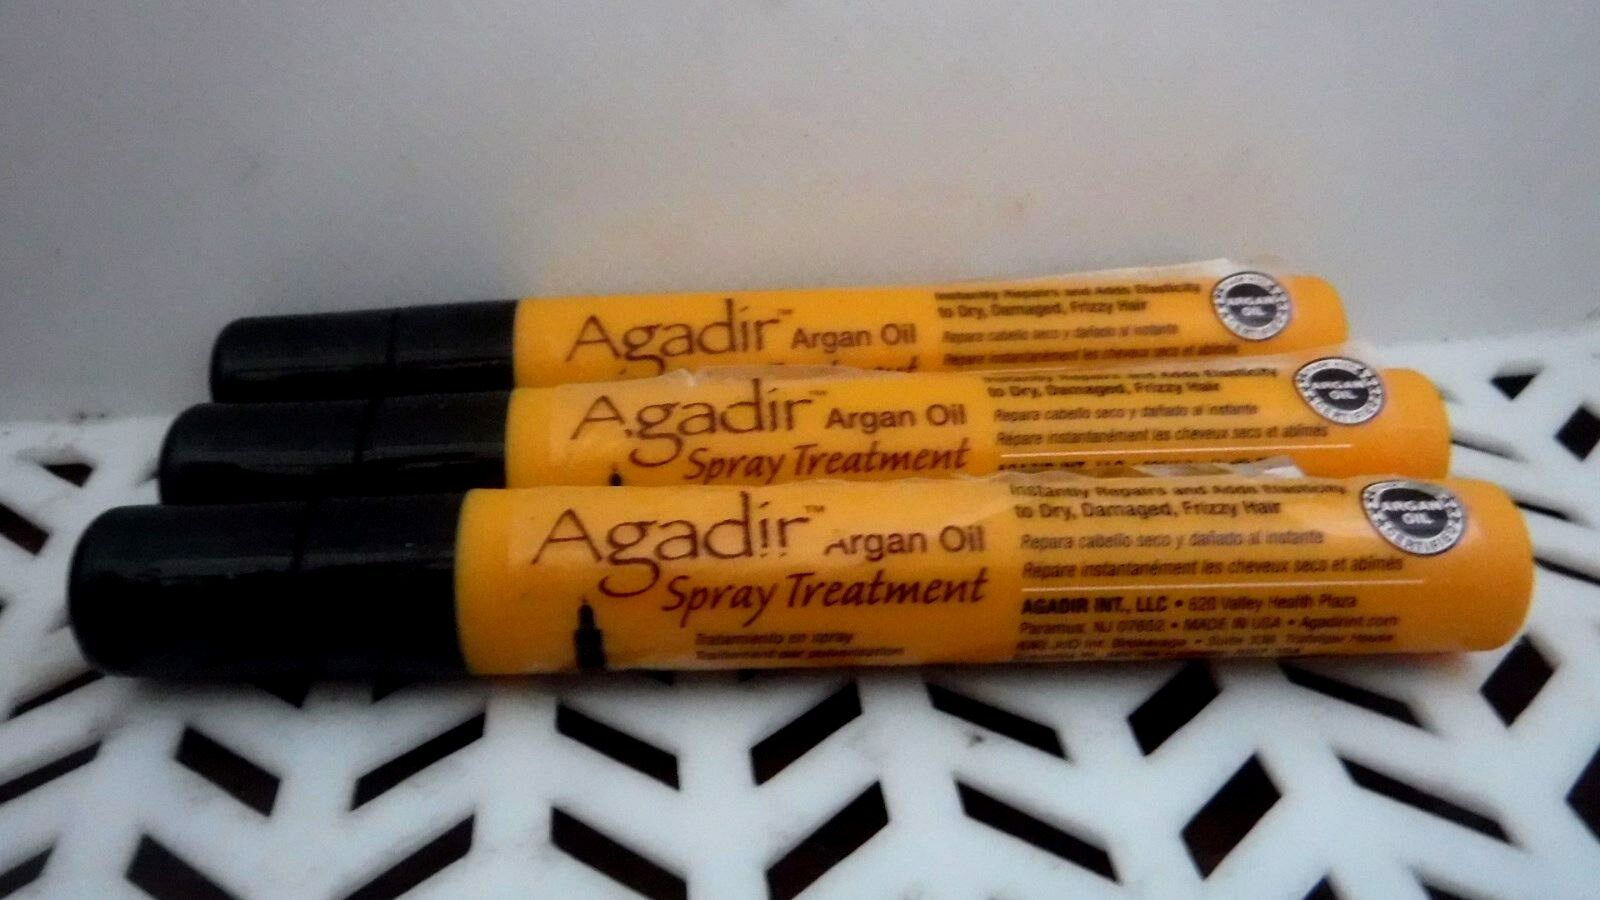 Agadir Argan Oil Spray Treatment, 0.308 oz